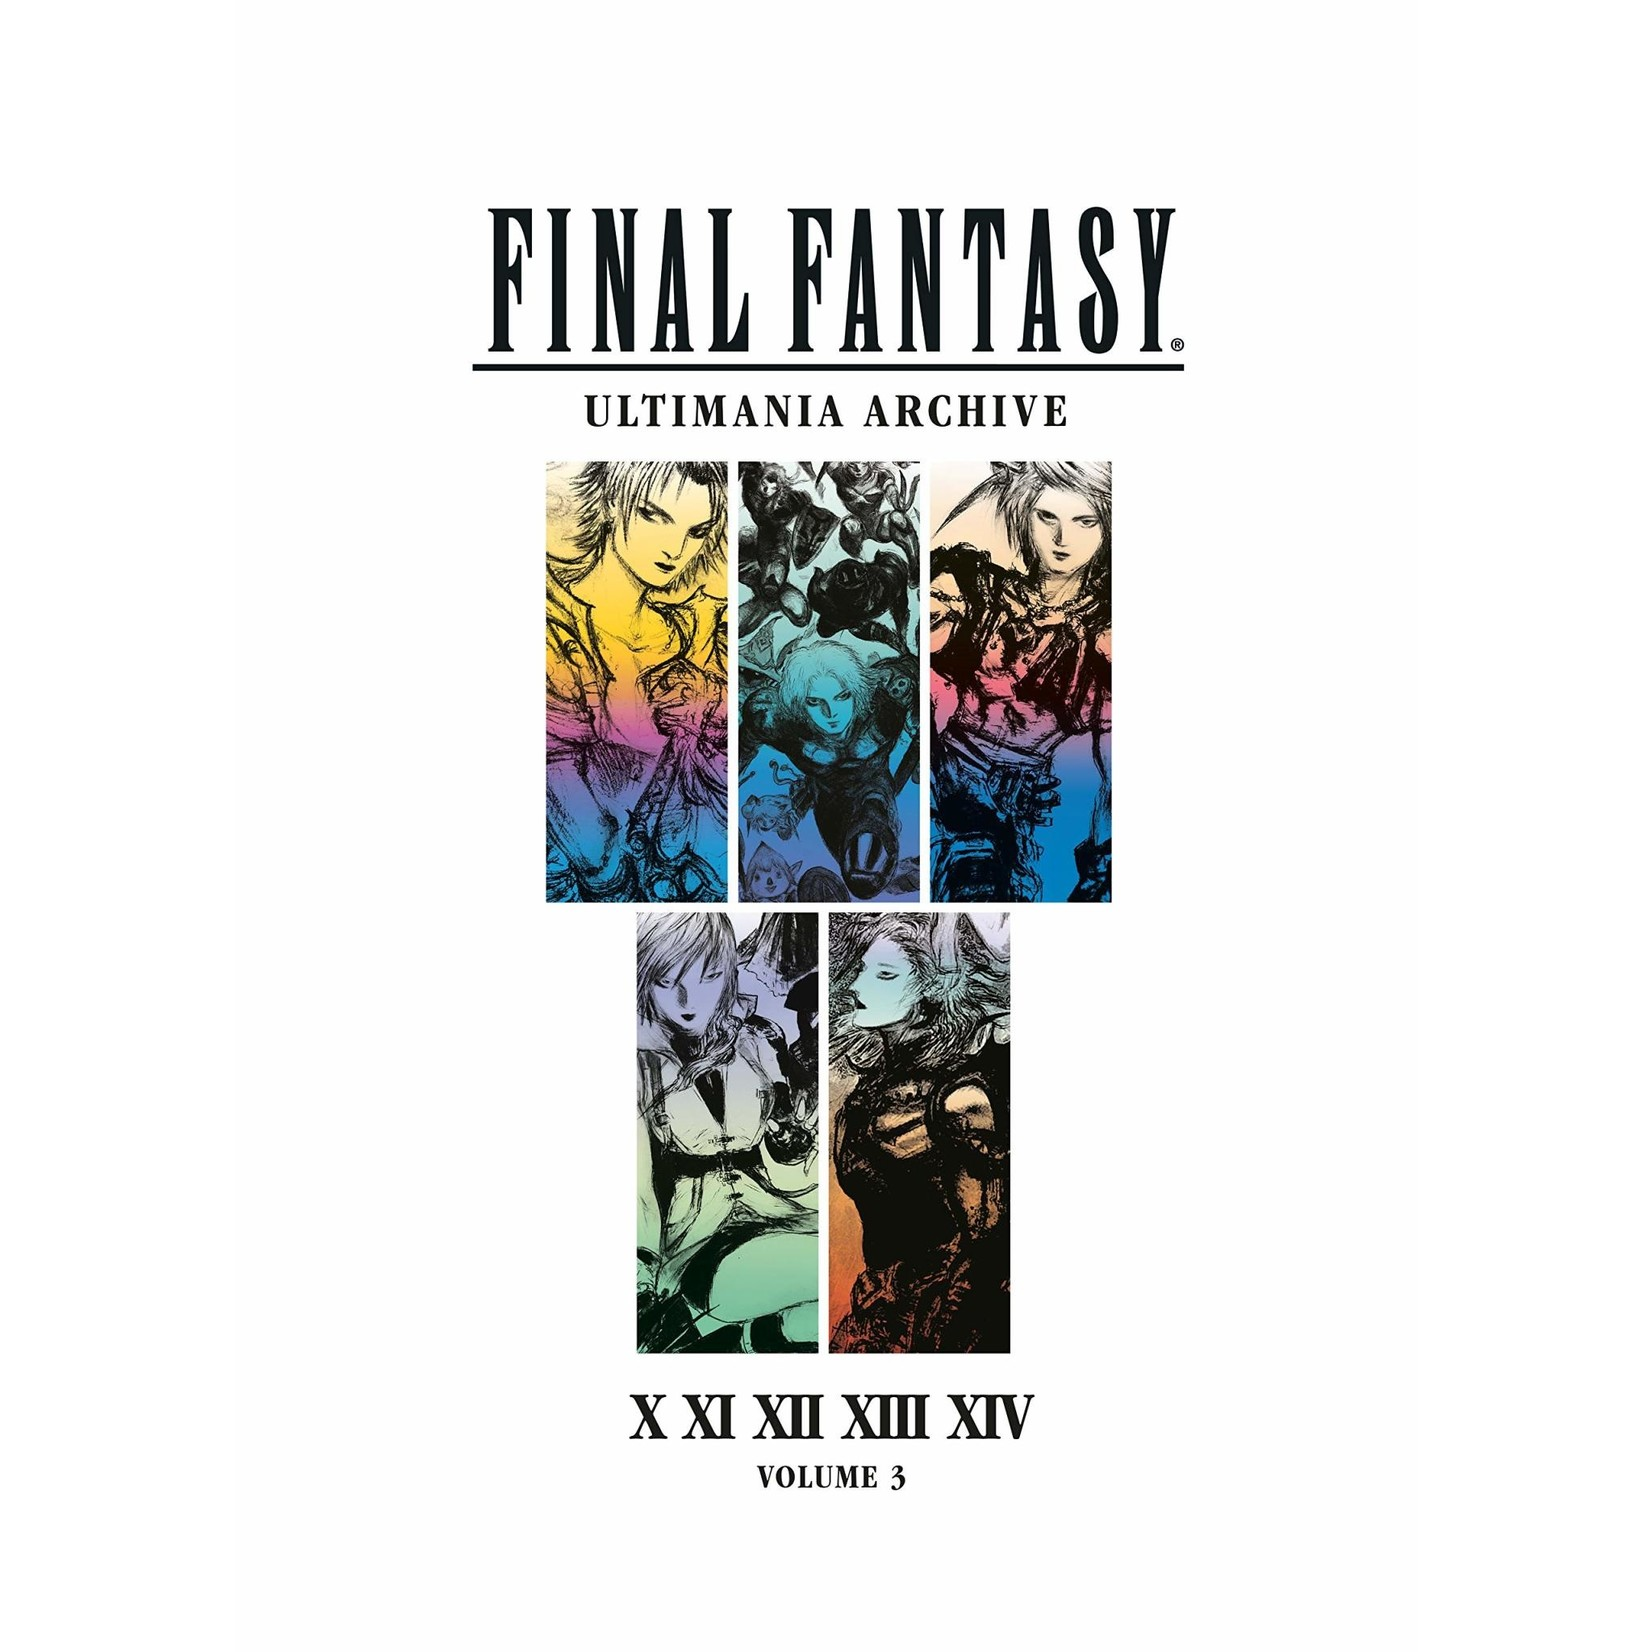 Final Fantasy Ultimania Archive : X, XI, XII, XIII, XIV, Hardcover by Square